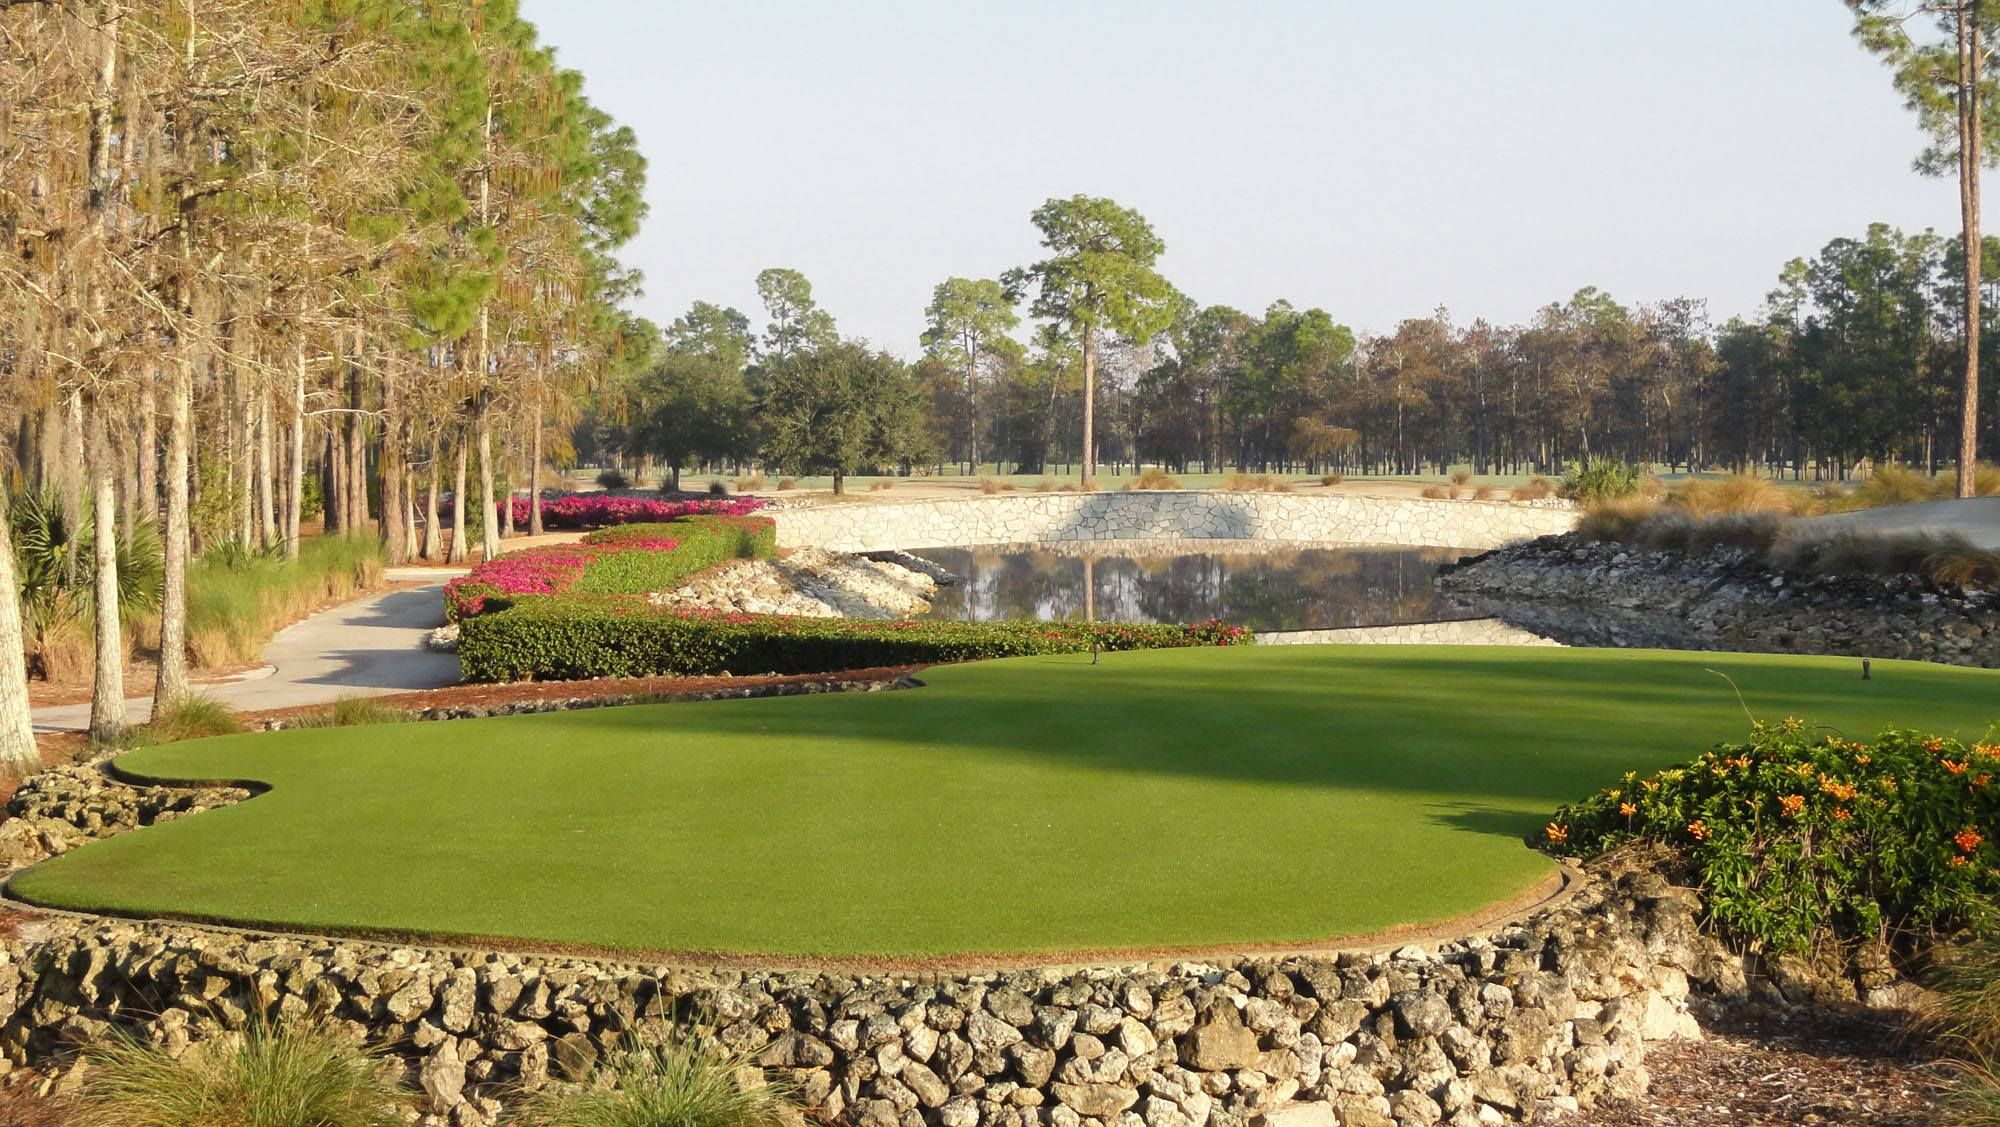 Naples National Golf Club In Florida Has Been Open For About 25 Years Golfcourseoftheday Rock Bottom Golf Rockbott Golf Courses Discount Golf Golf Clubs